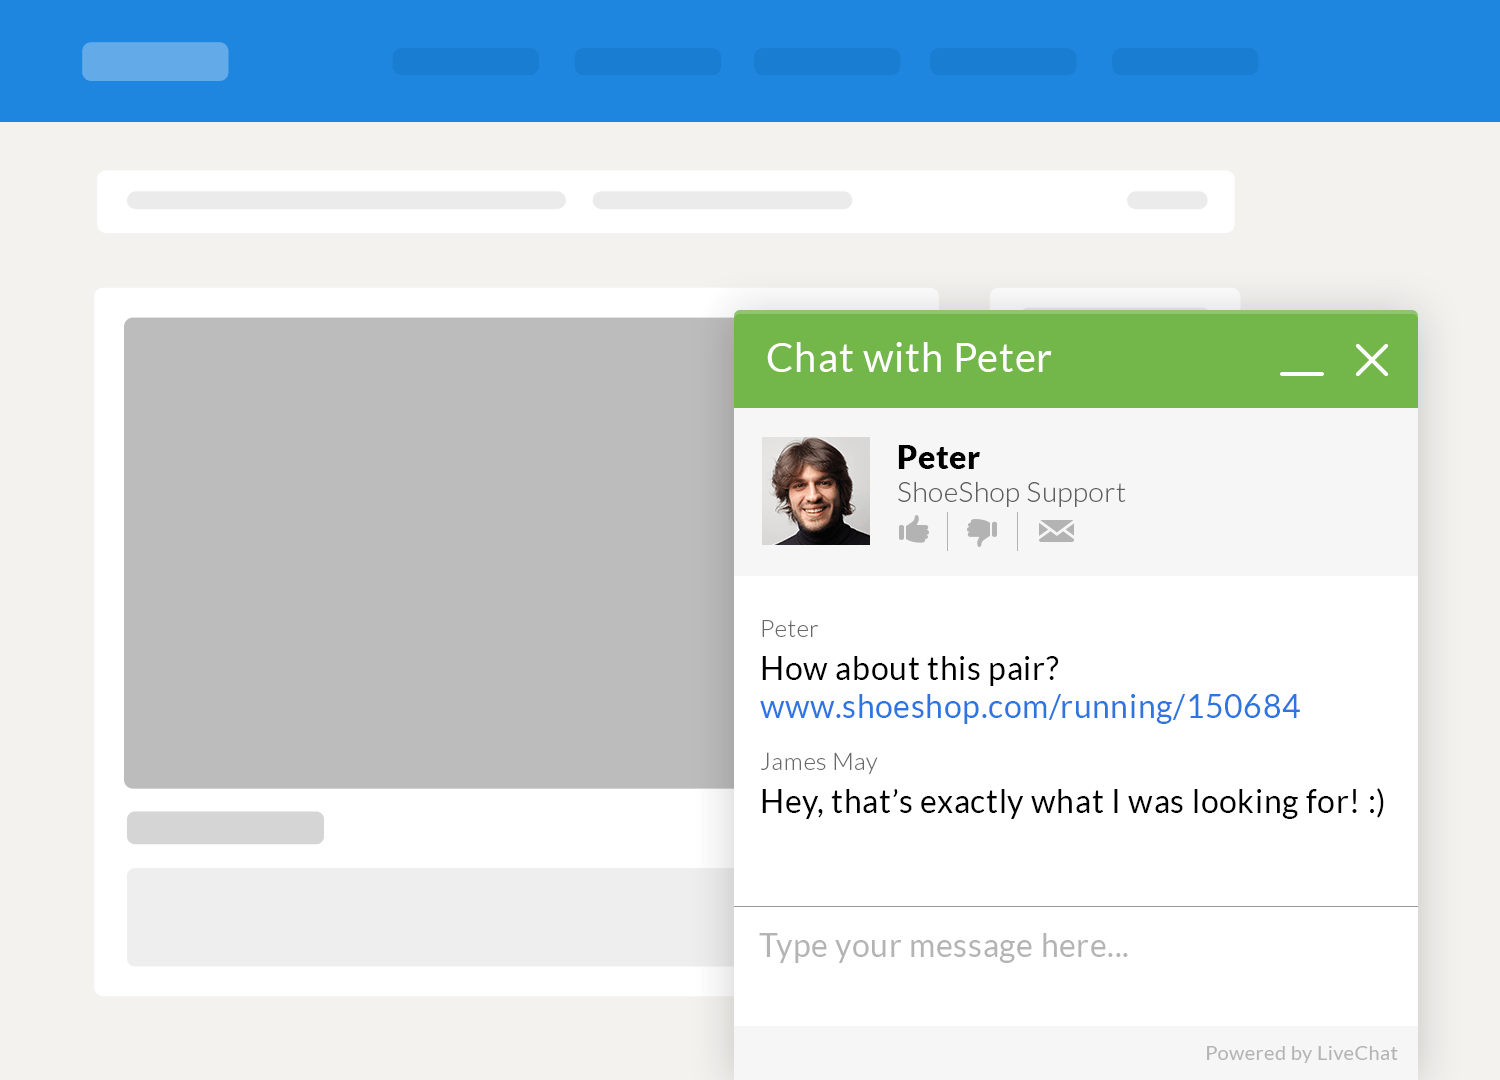 LiveChat customer service, PlayVox quality assurance